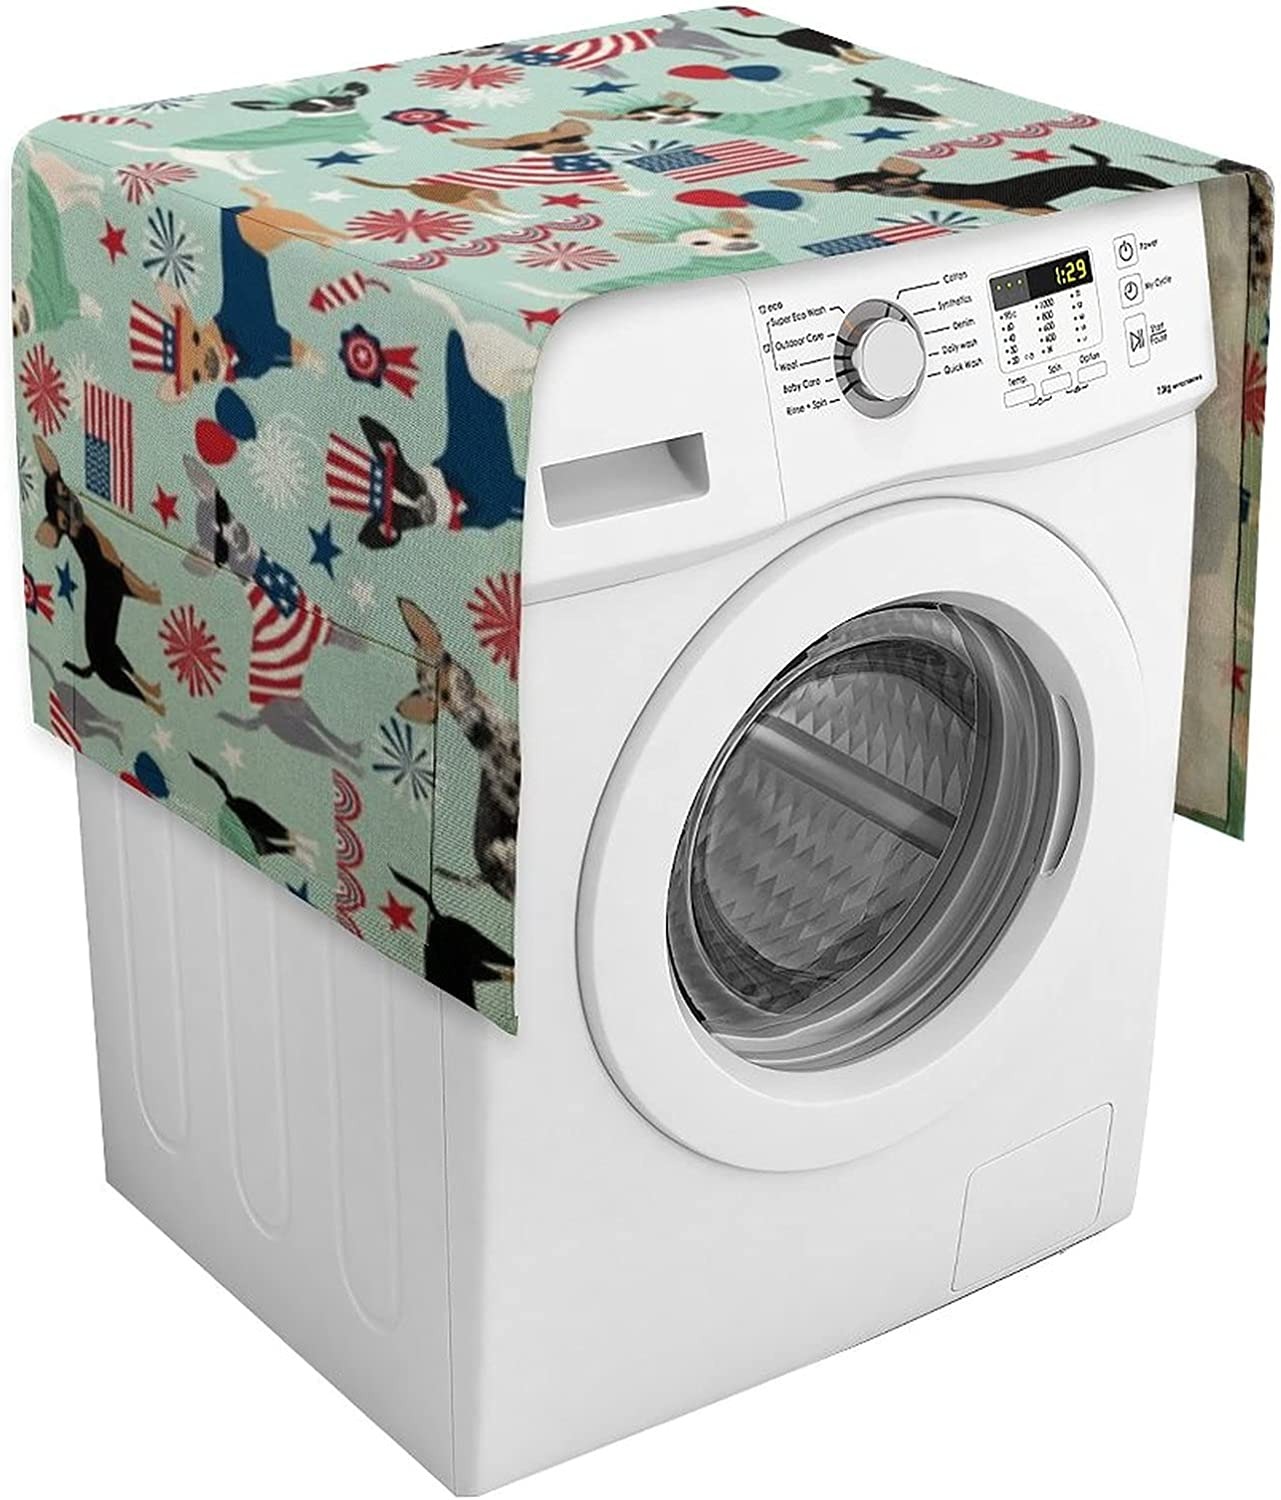 Multi-Purpose Washing Machine Covers Protector Appliance Washer Brand new Product